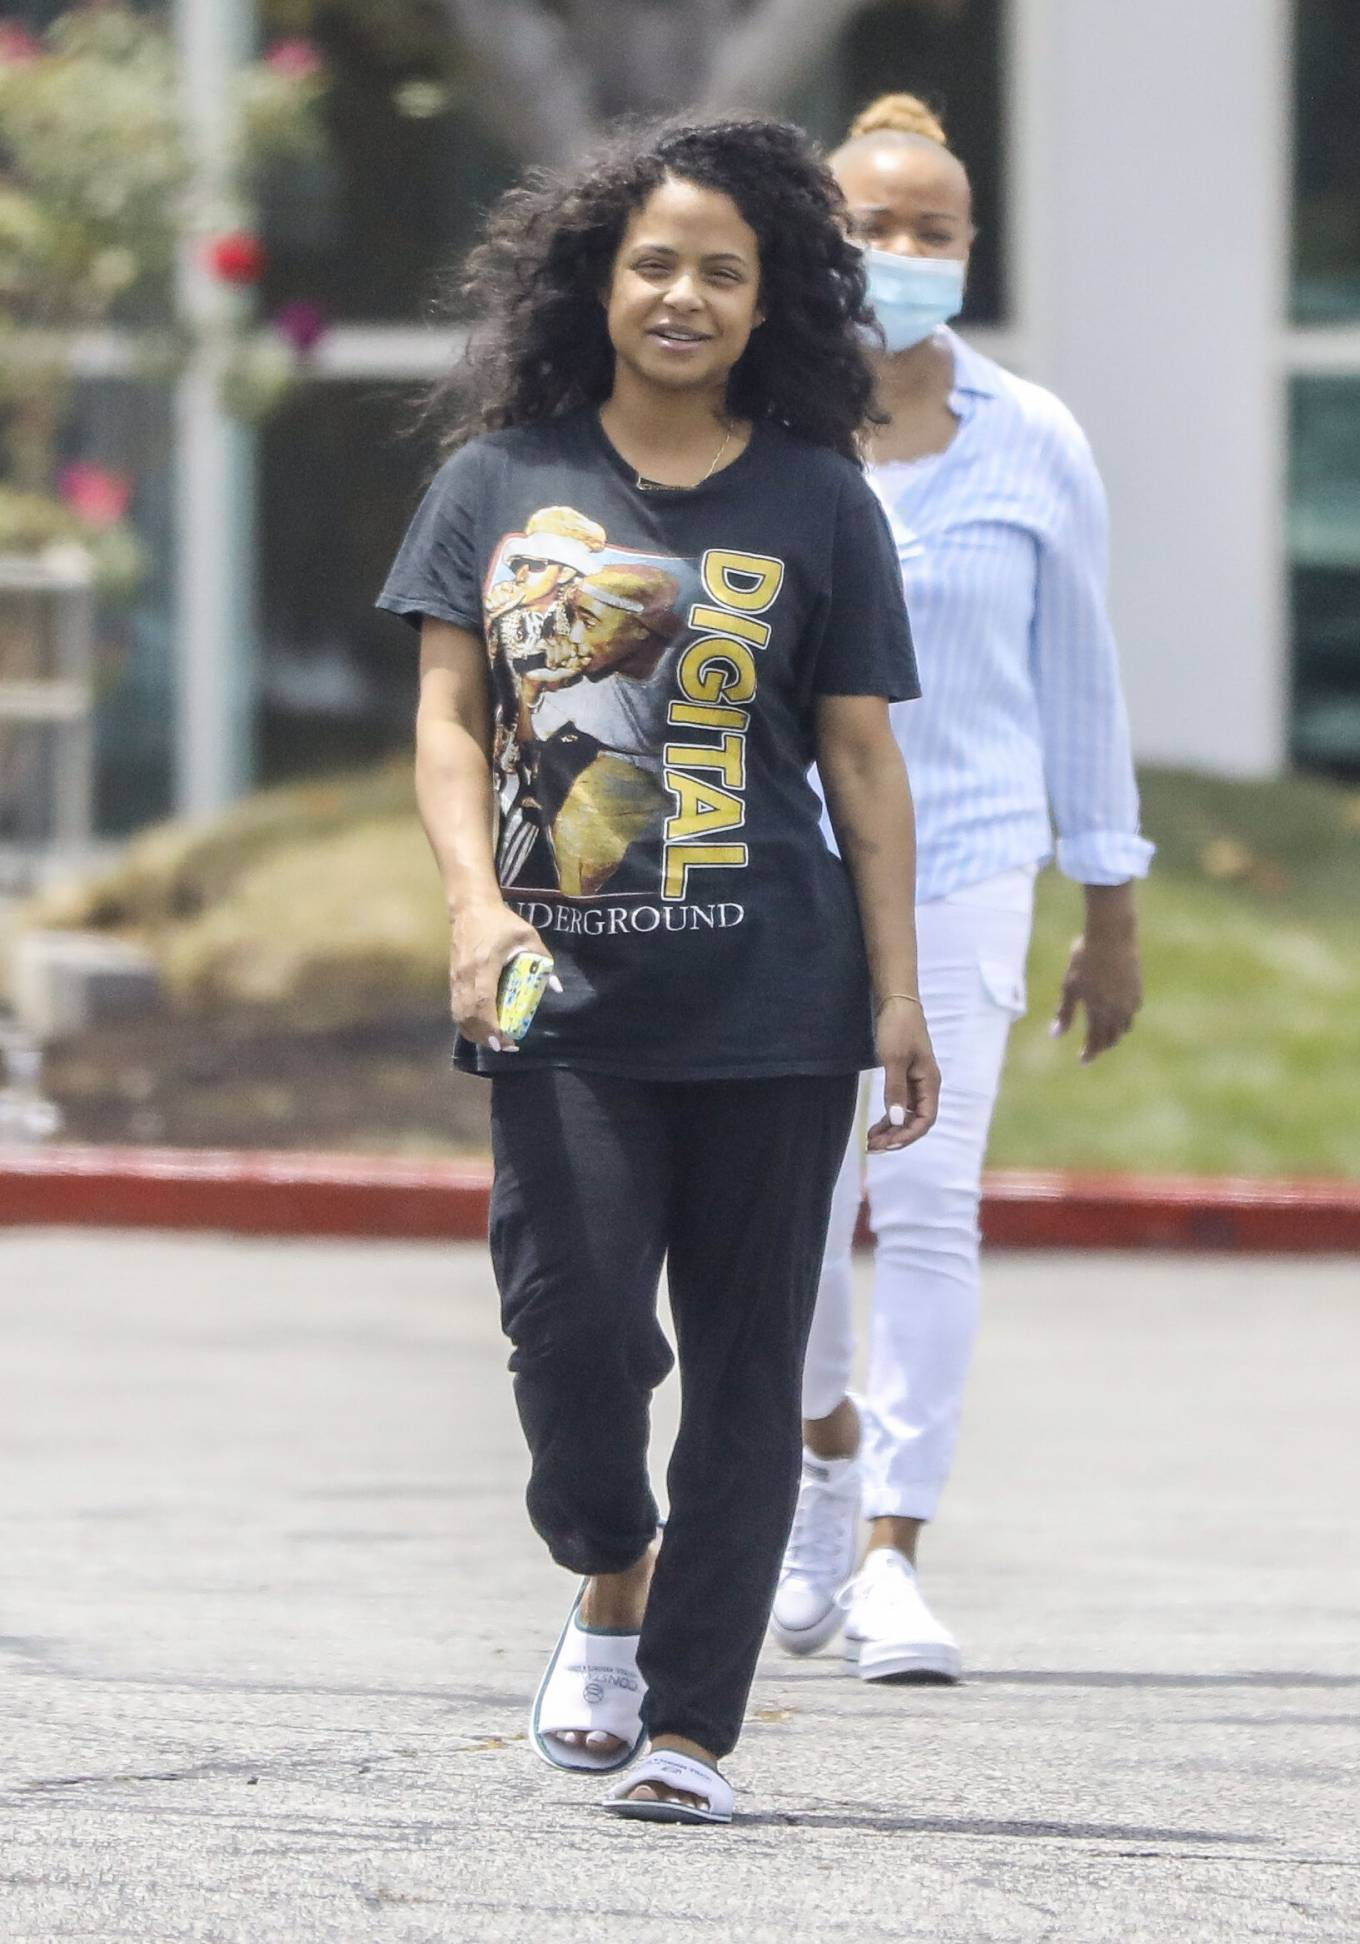 Christina Milian 2021 : Christina Milian – Seen without makeup in Los Angeles at Mercedes dealership-11